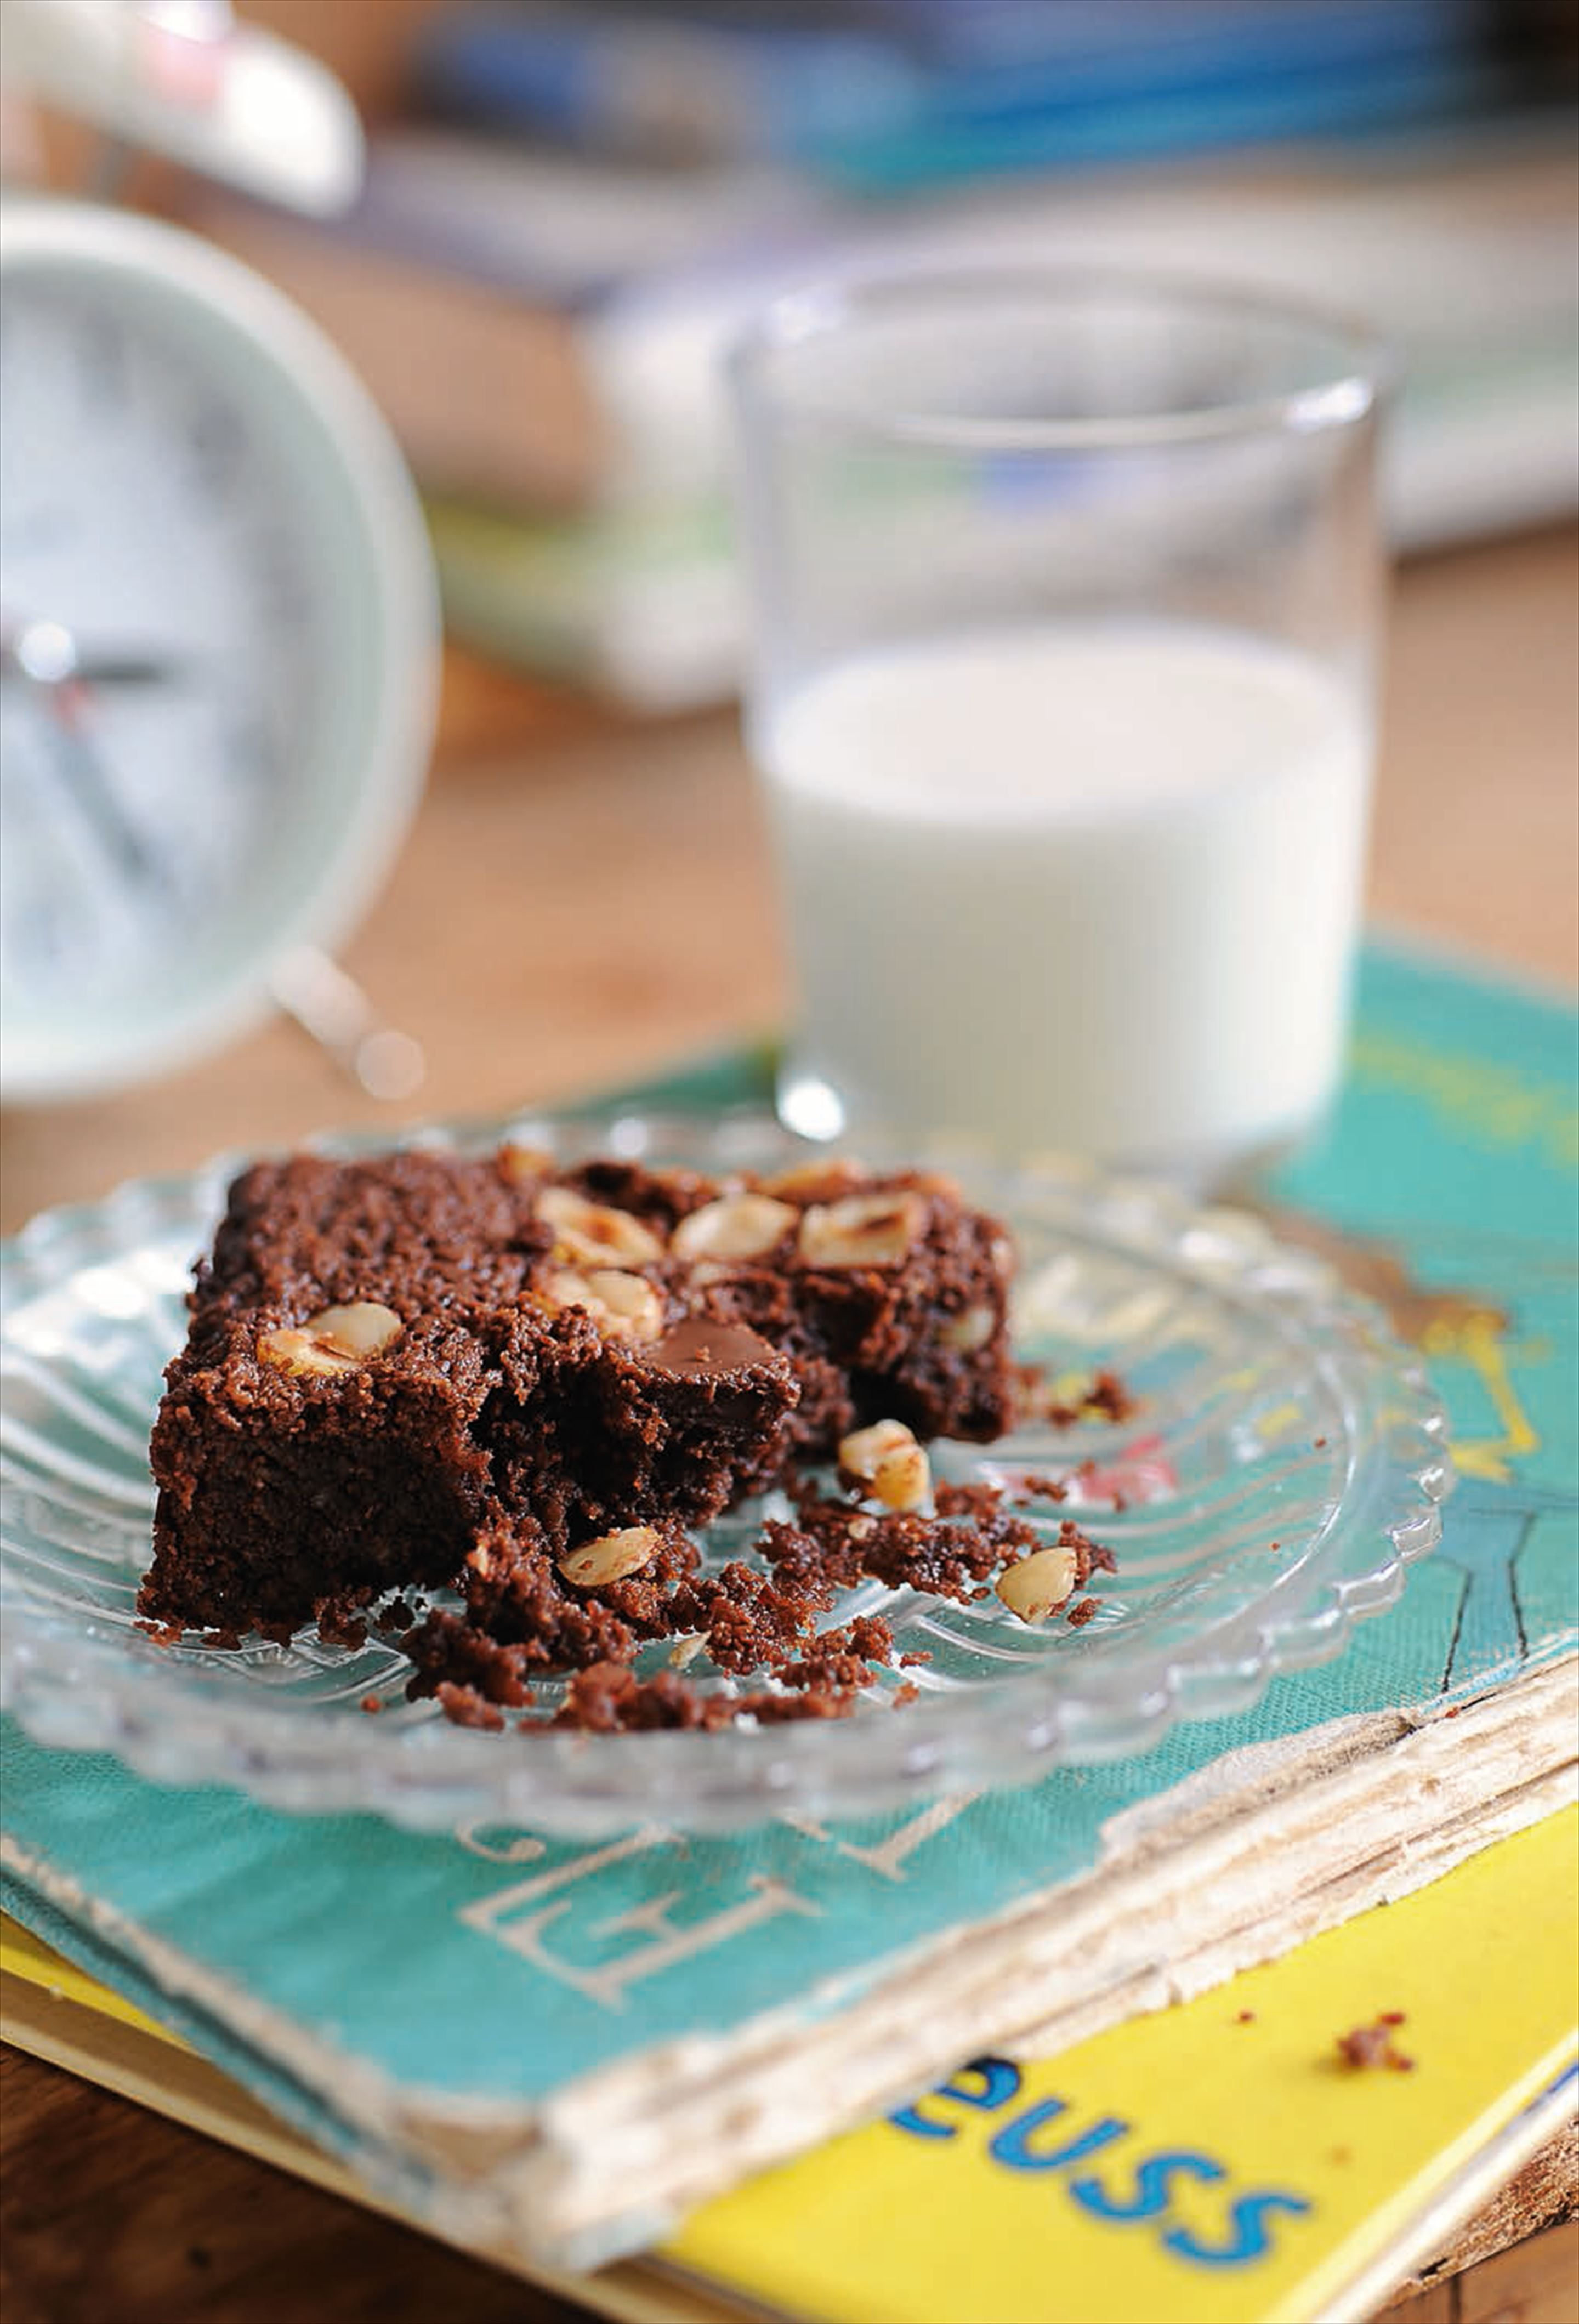 Guaranteed-super-squidgy chocolate brownies